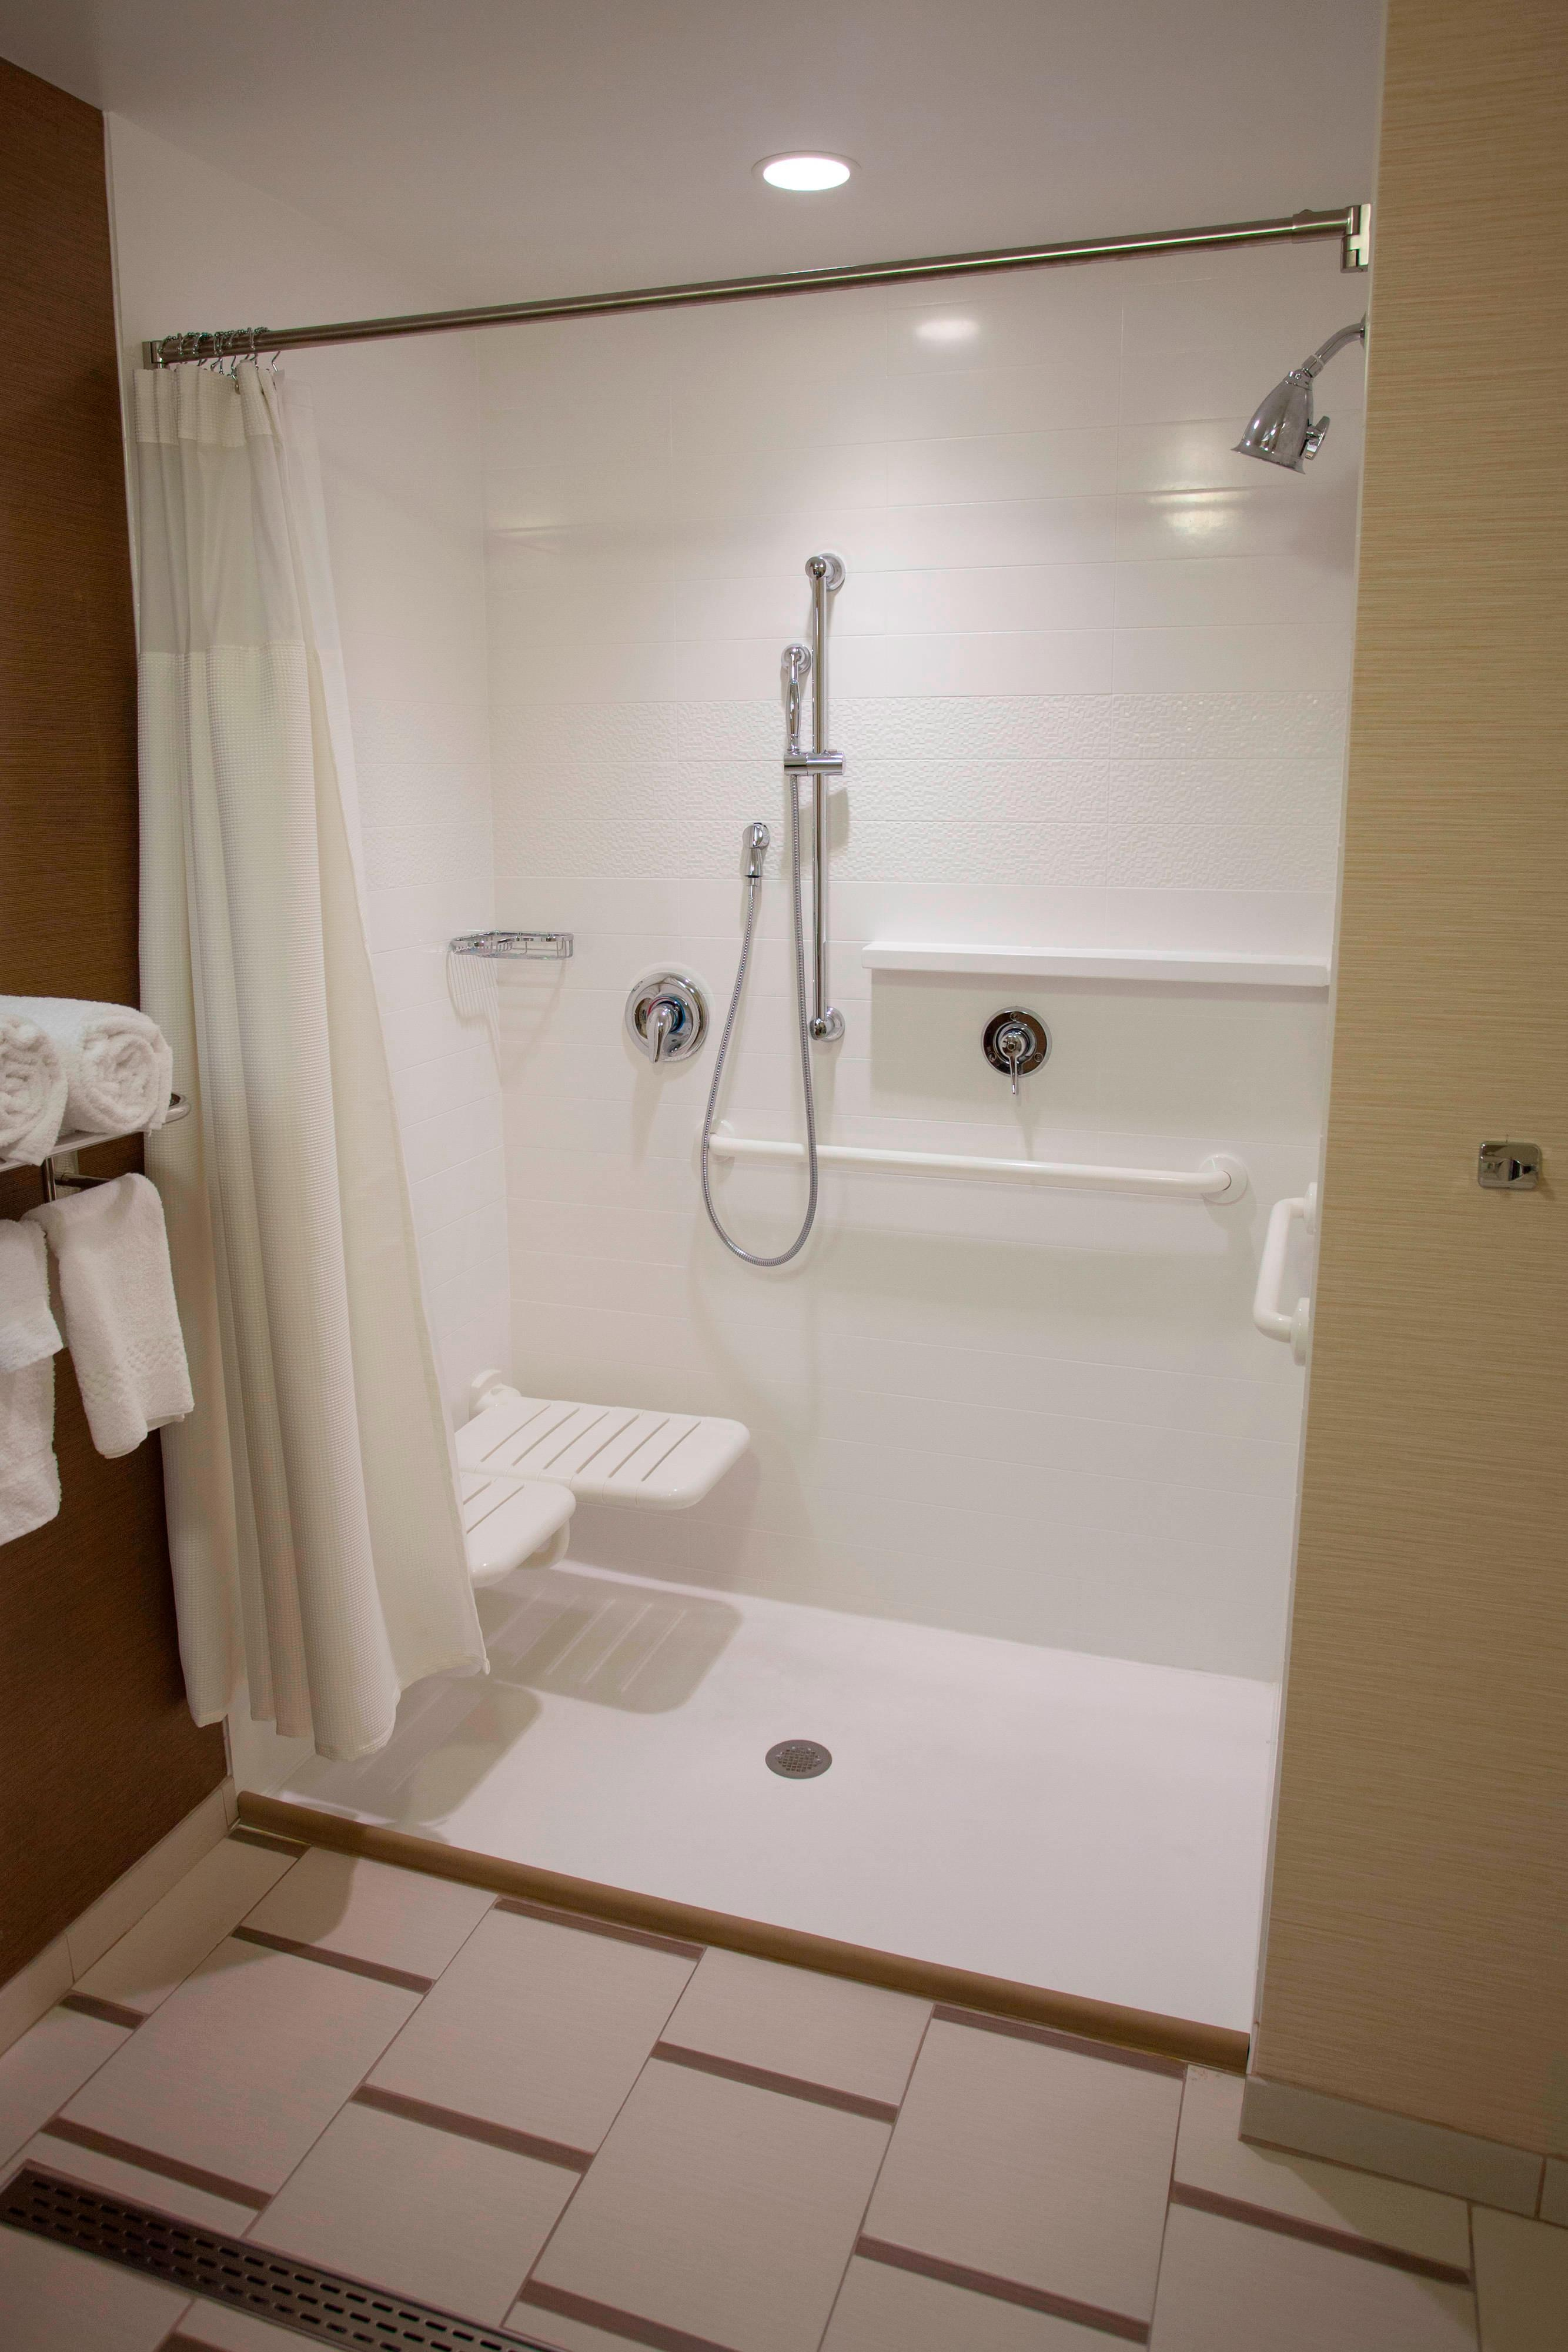 Fairfield Inn Columbus Airport Accessible Bathroom with Roll In Shower